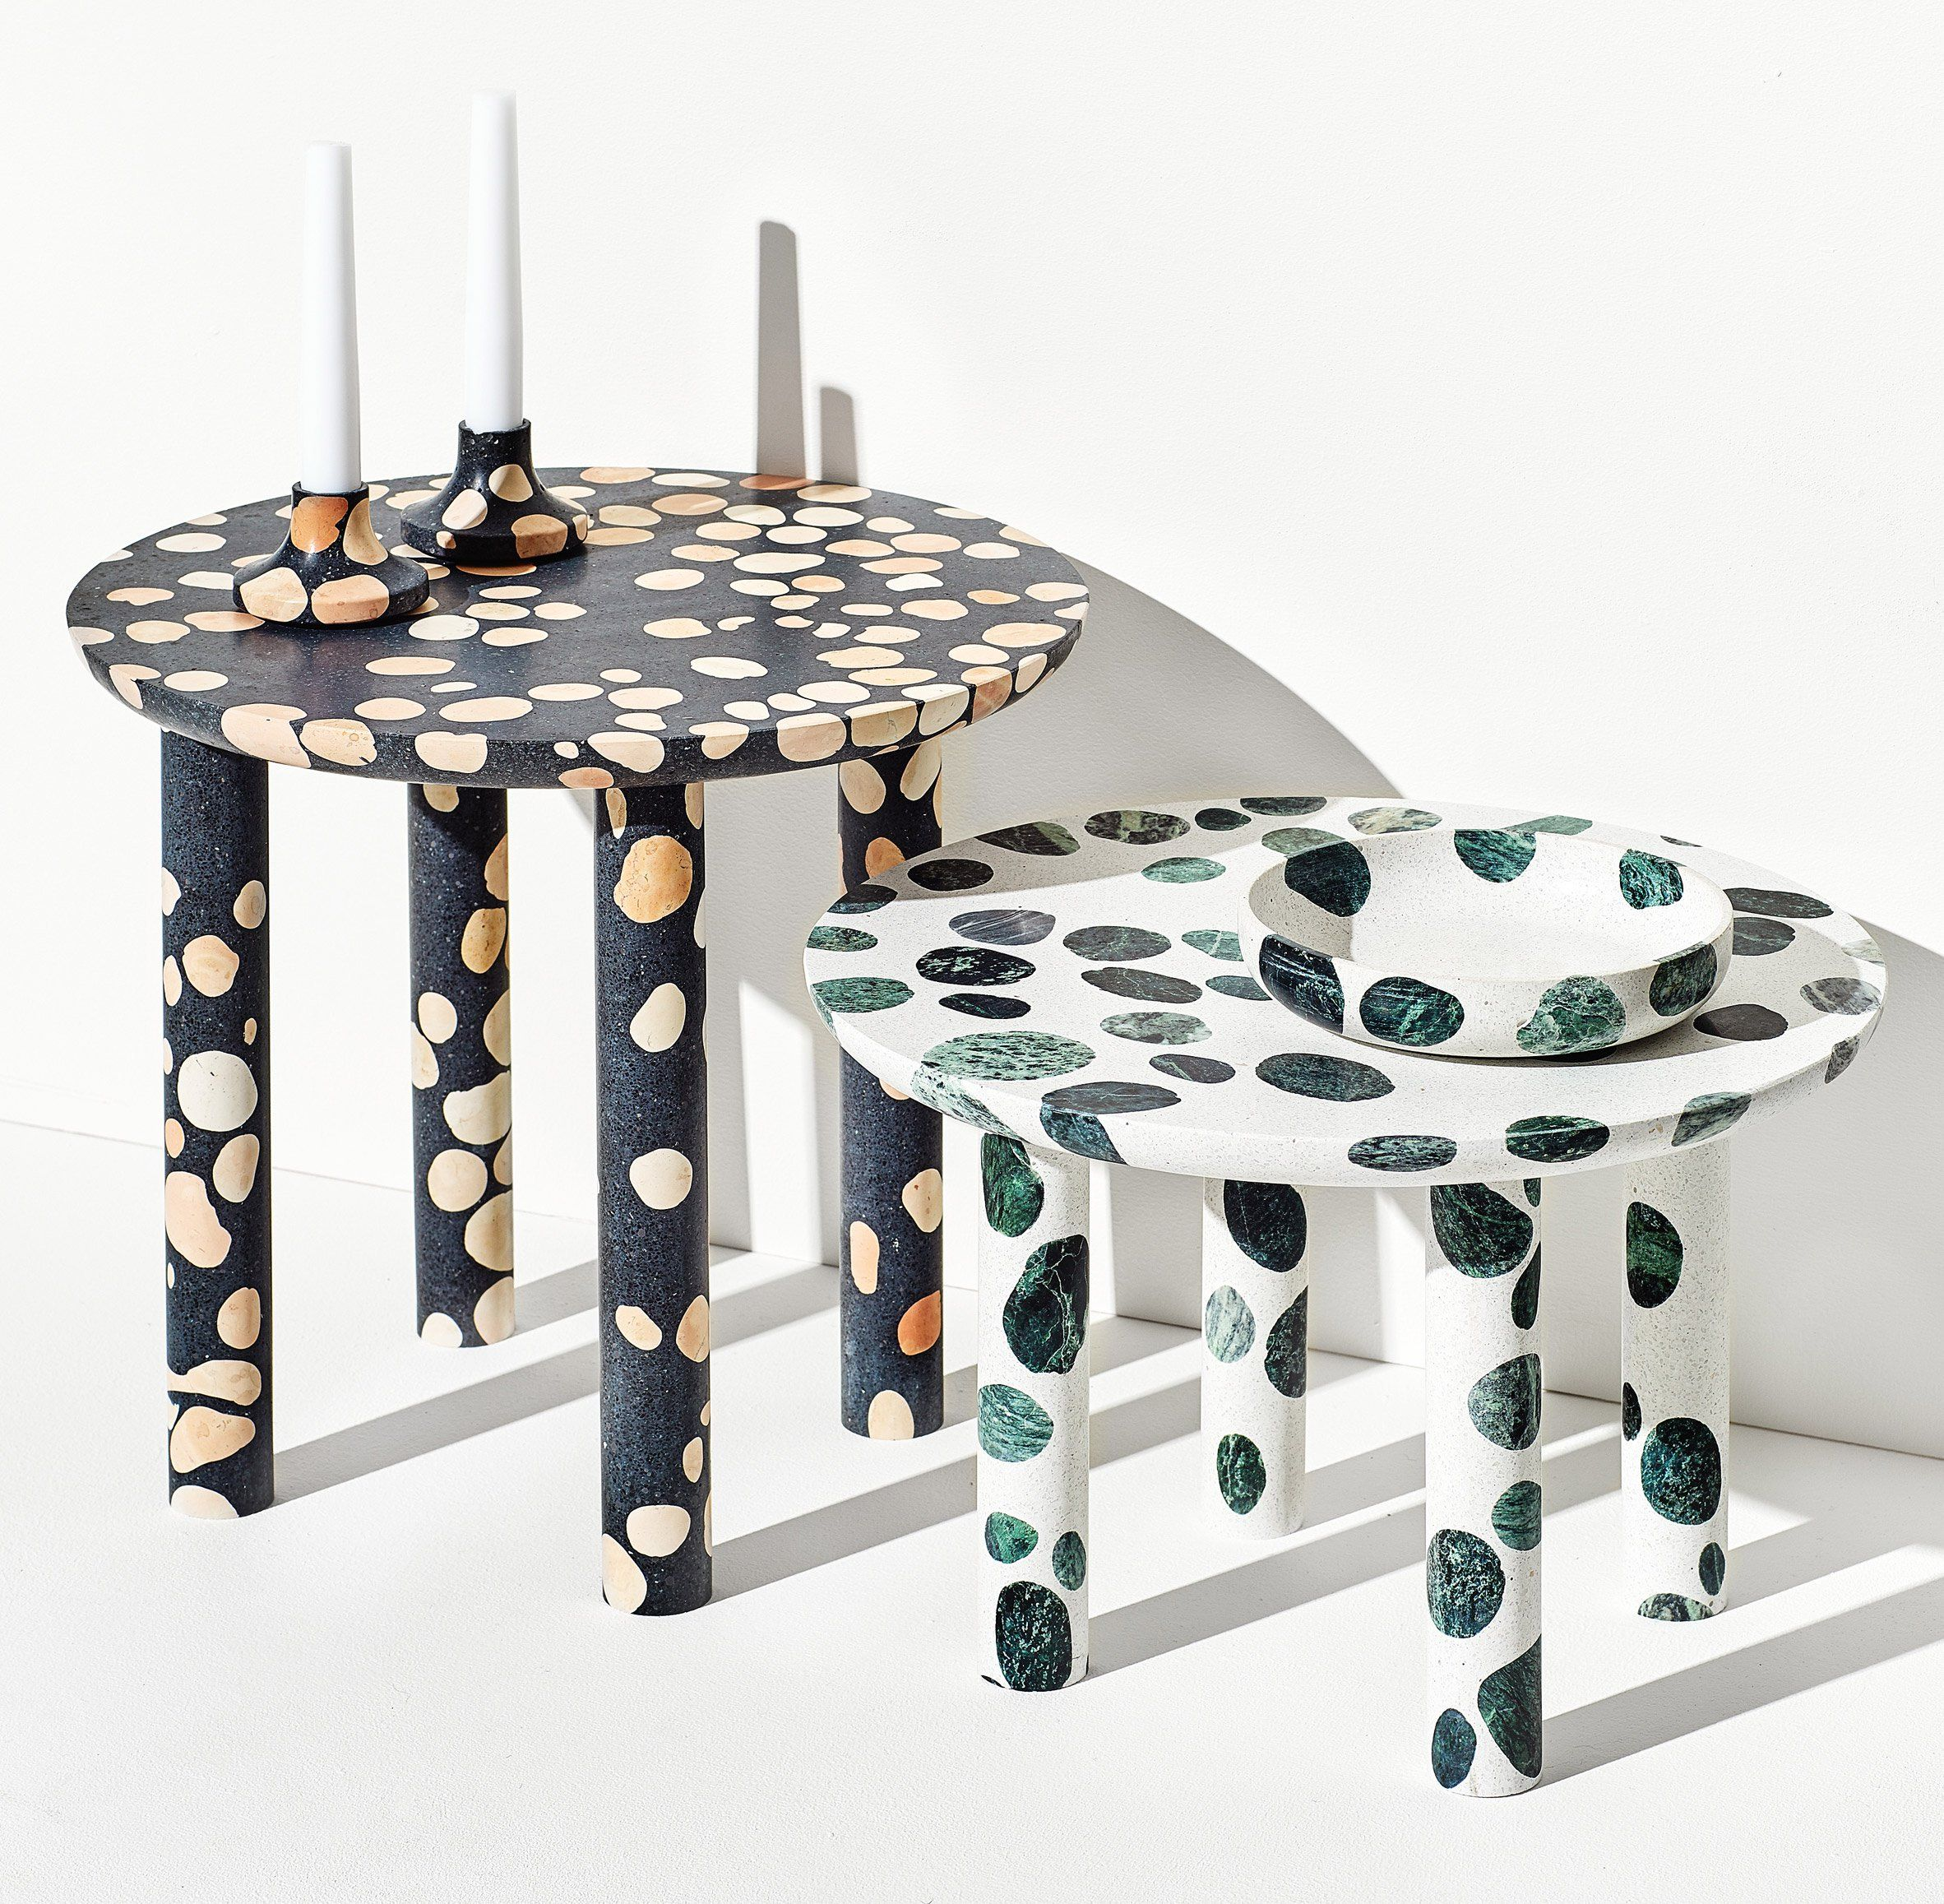 Alberto Bellamoli Added To The Growing Trend For Terrazzo At This Yearu0027s  IMM Cologne, Unveiling Photo Gallery